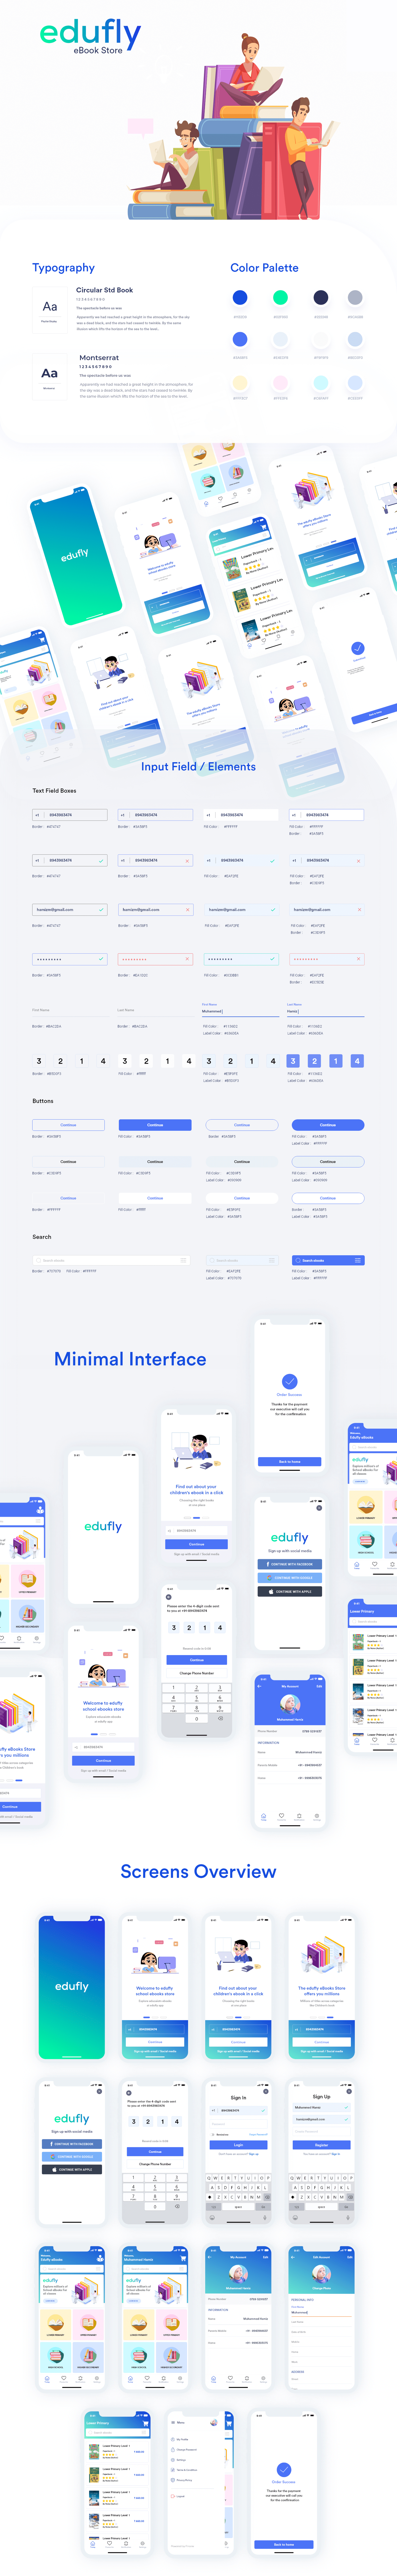 Edufly - Online eBook Store UI Kit - Edufly is a iOS UI kit that helps create beautiful, minimal app UI using human-friendly design. This UI Kit will enable you to build almost any design with the out-of-the-box building blocks that is available in the edufly UI Design.